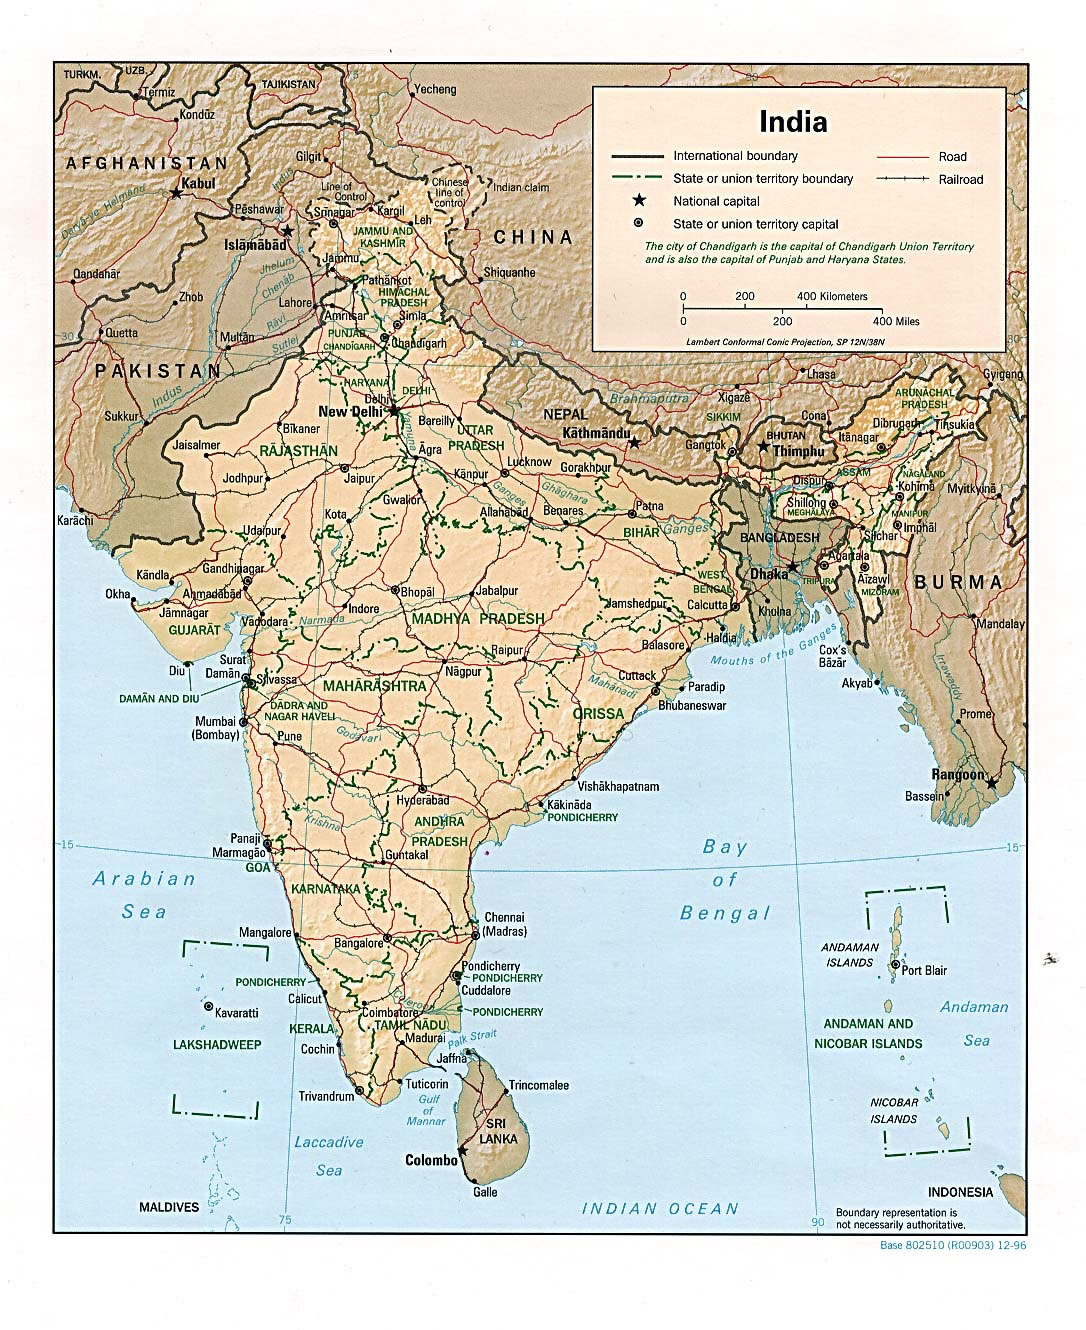 relief-map-of-india-1996